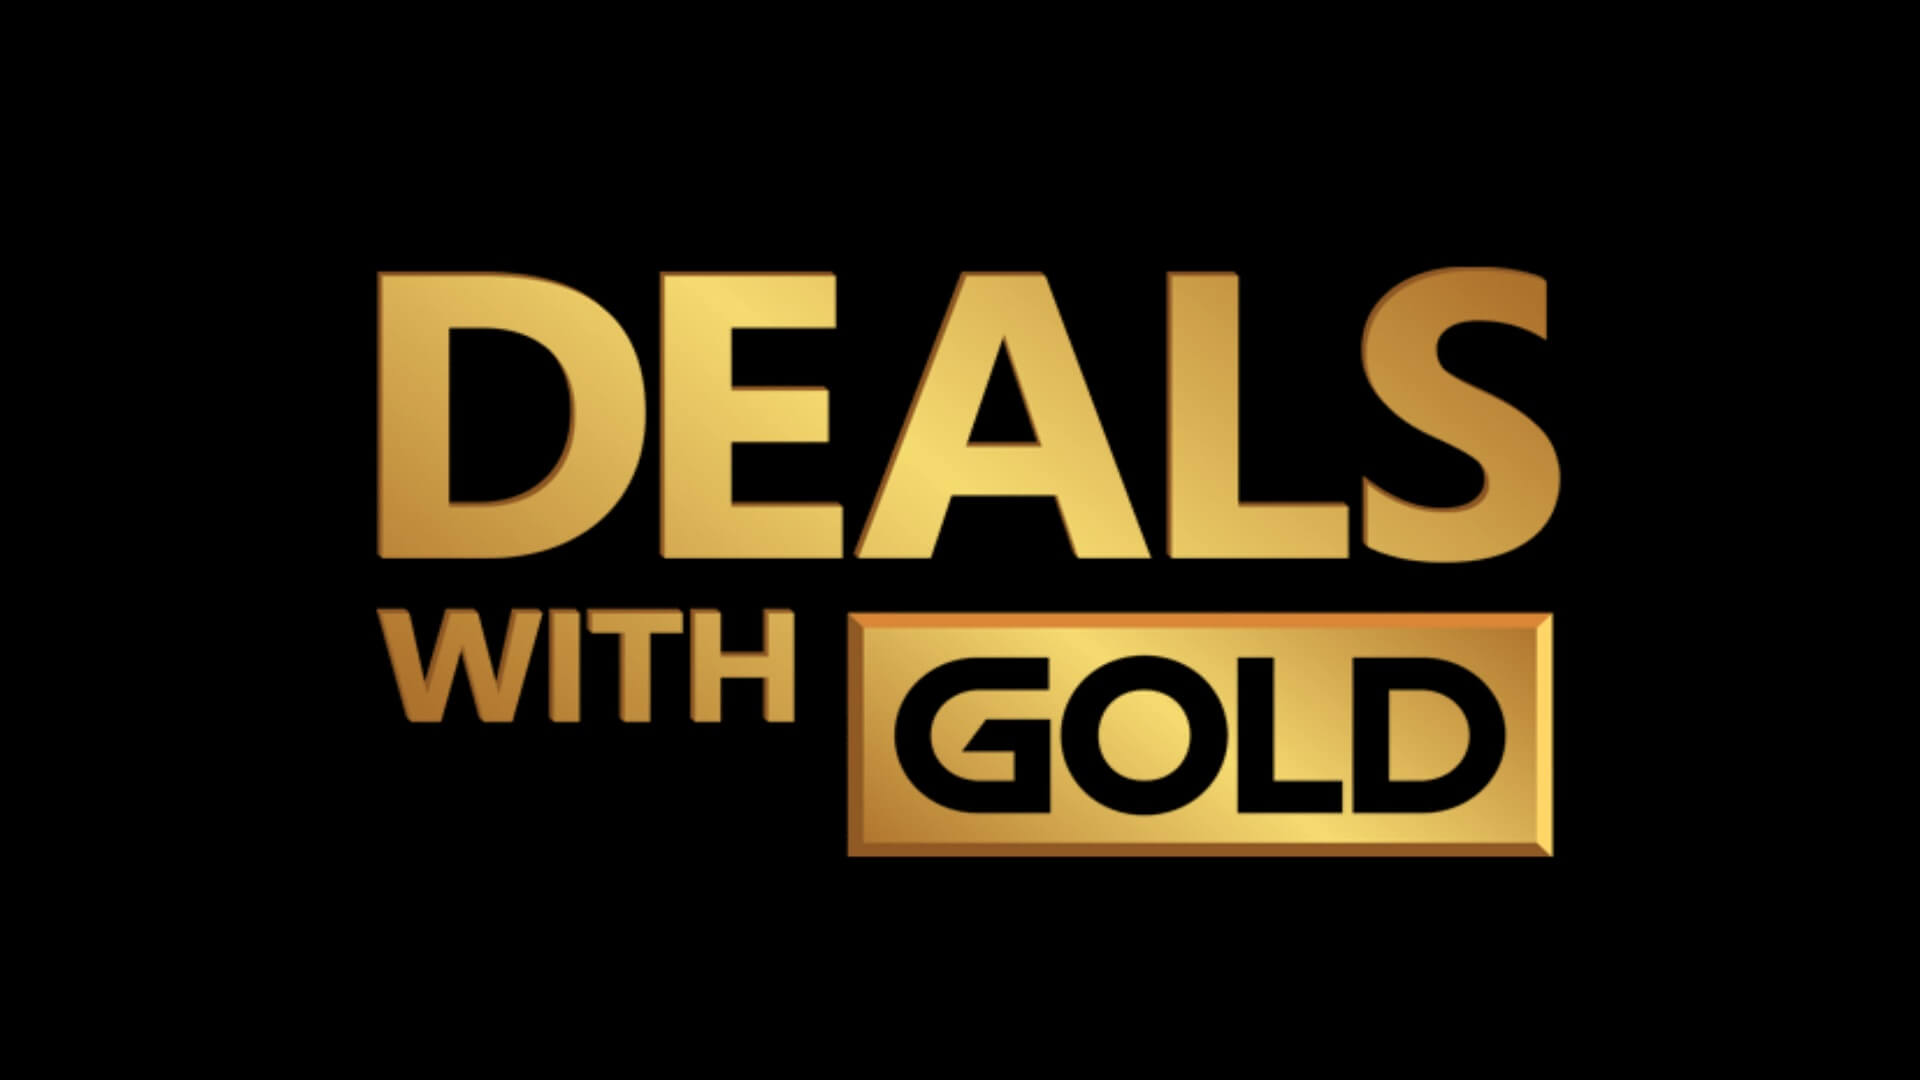 This Week's Xbox Deals with Gold